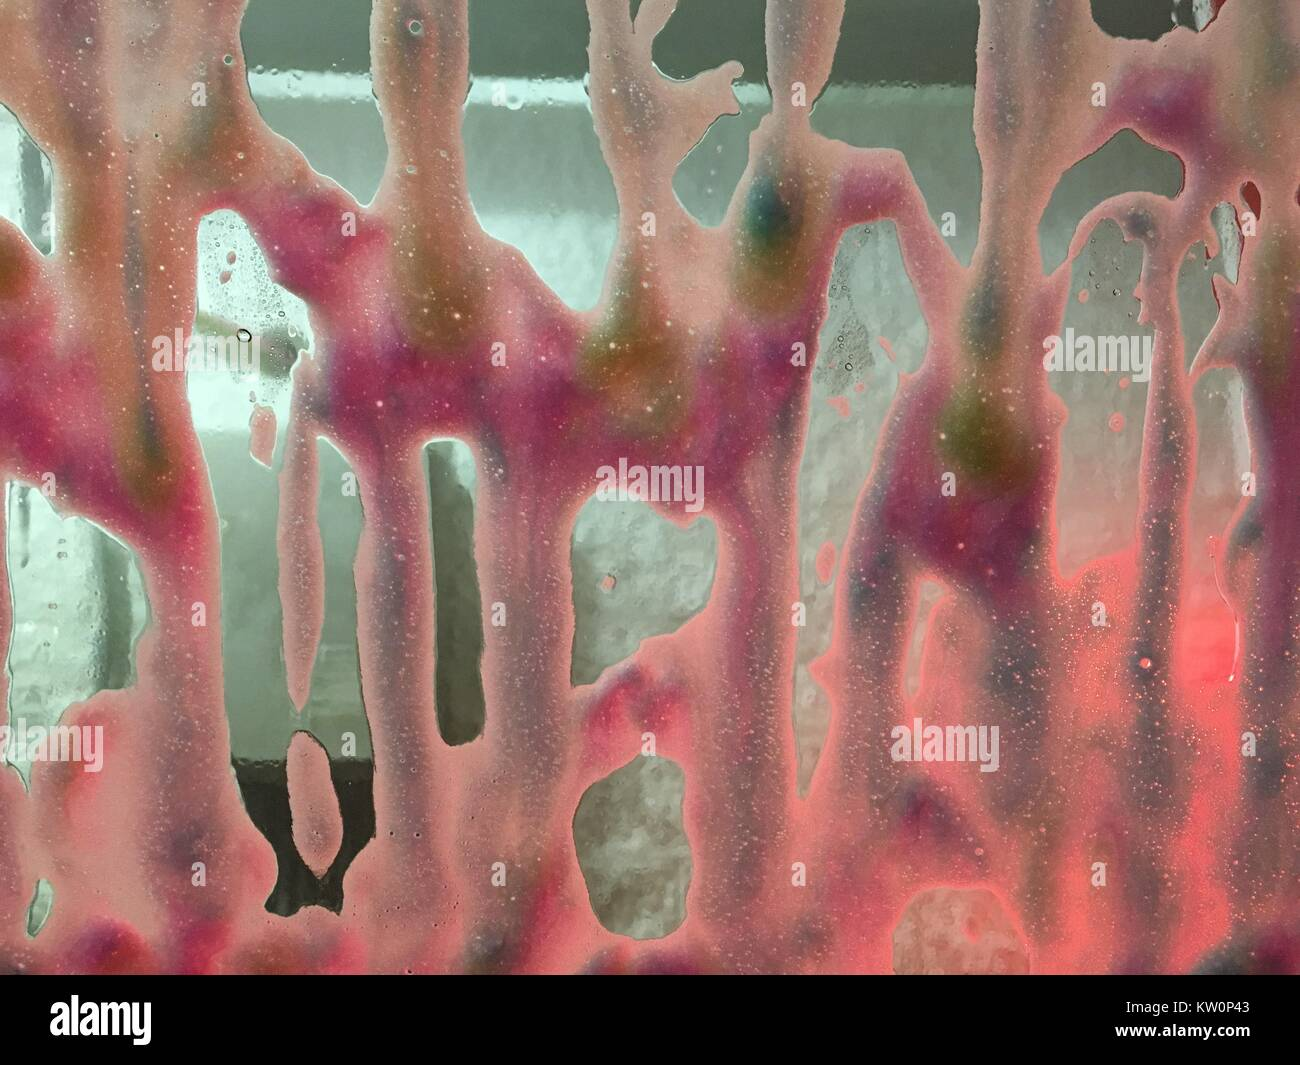 Car Wash Soap Suds Abstract Background - Stock Image